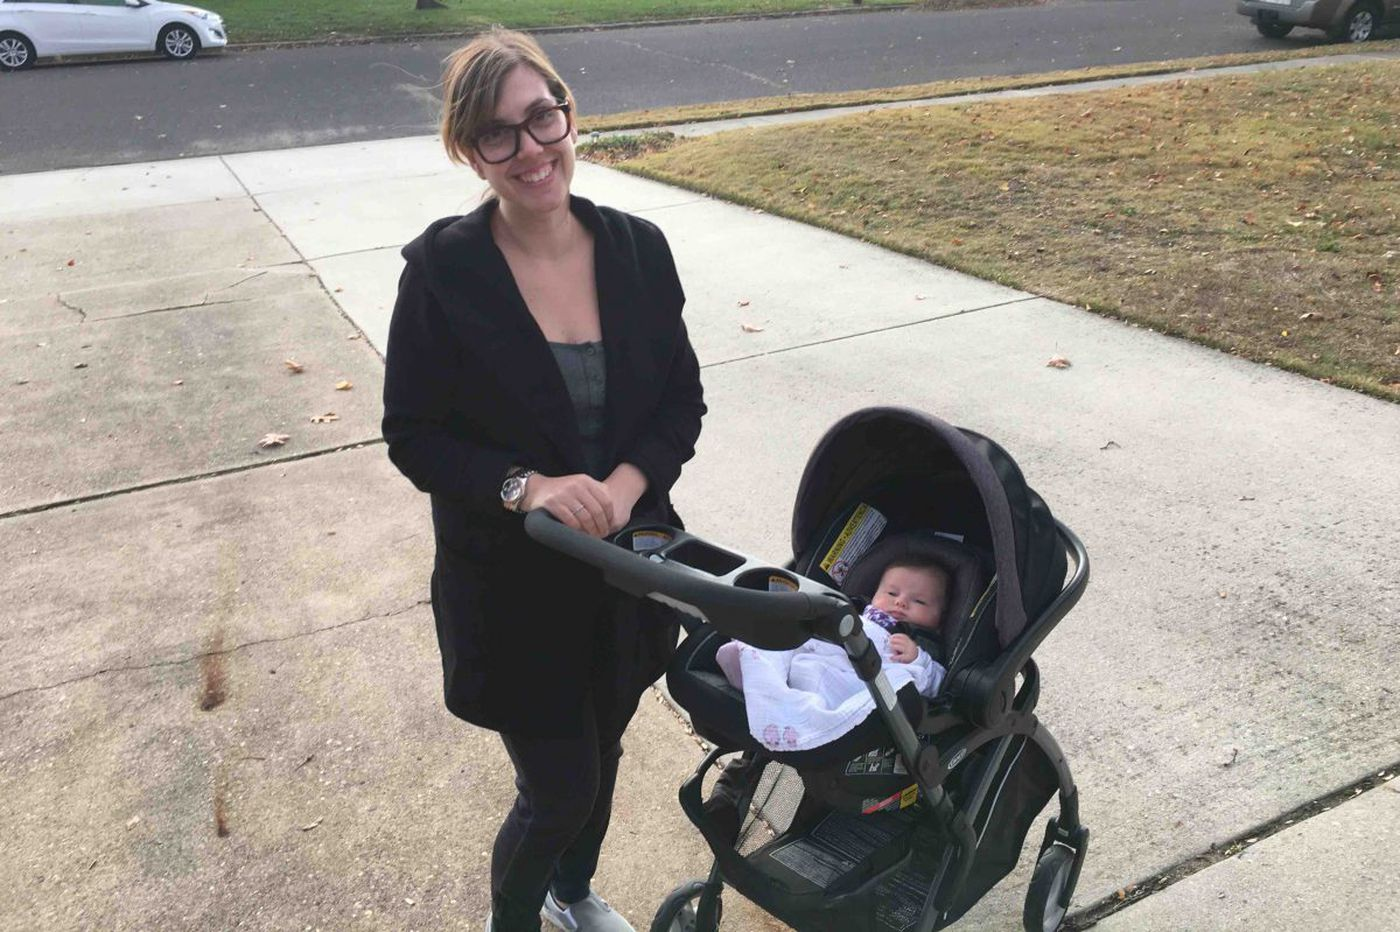 """Strollers on SEPTA buses: One mom says complaints are """"first world problems"""" 